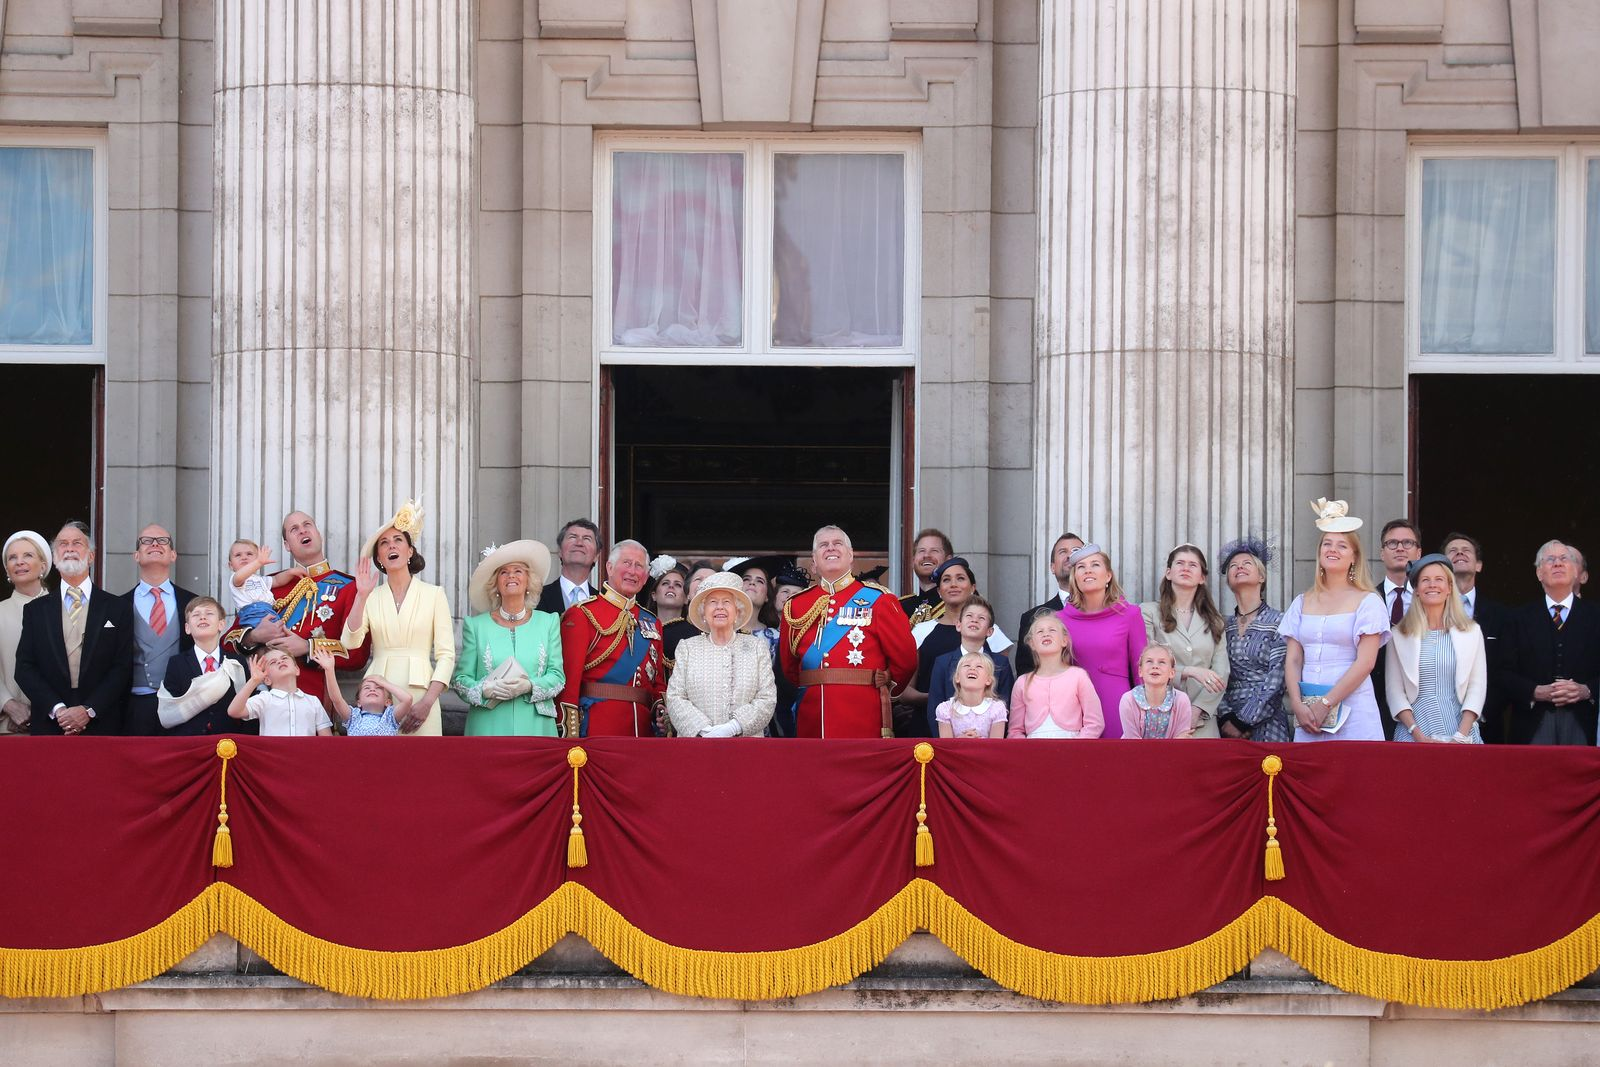 The Royal Family on the balcony of Buckingham Palace to watch a fly-past of aircraft by the Royal Air Force during Trooping The Colour, the Queen's annual birthday parade, on June 08, 2019.   Getty Images